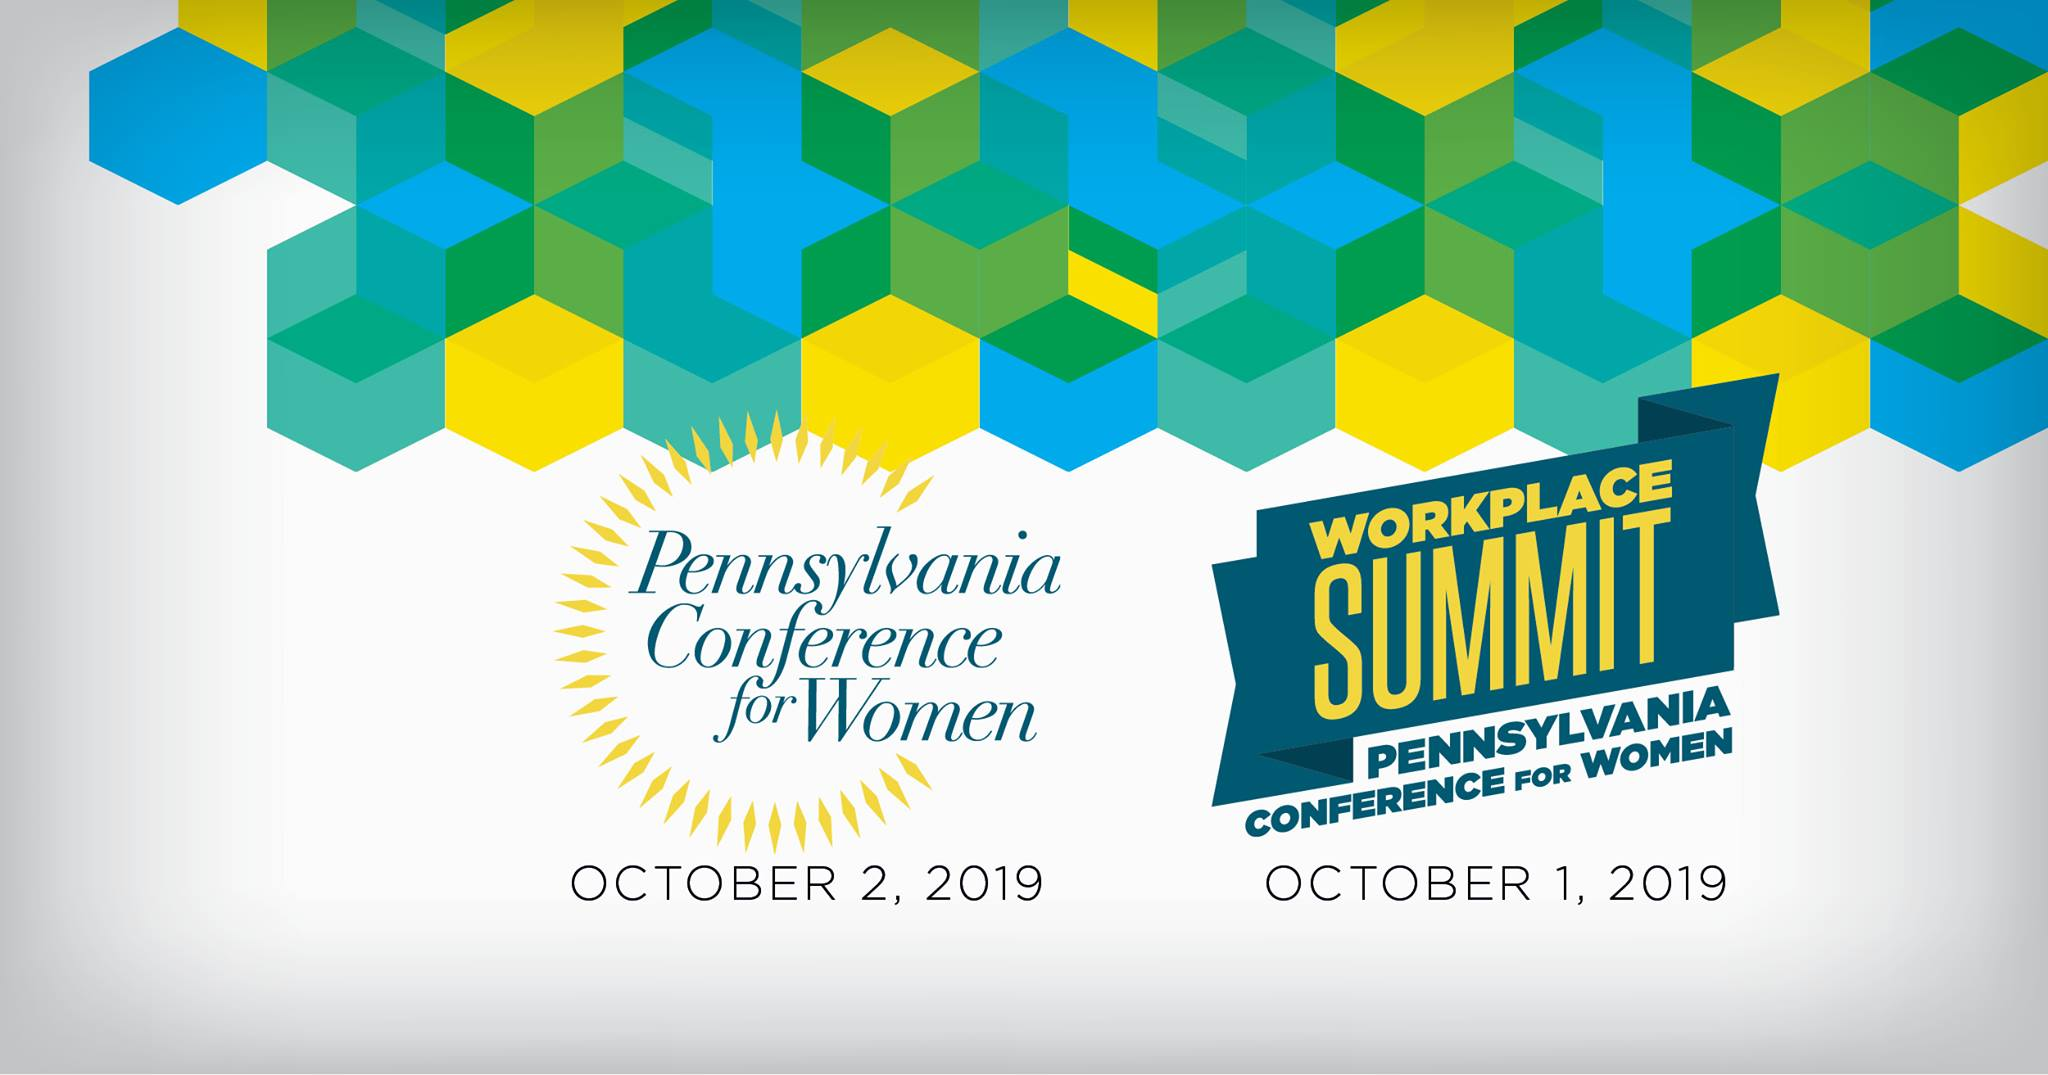 Pennsylvania Conference for Women - The Pennsylvania Conference for Women offers inspiration, motivation, networking, personal & professional development, and community.October 1-2nd, 2019Pennsylvania Convention Center